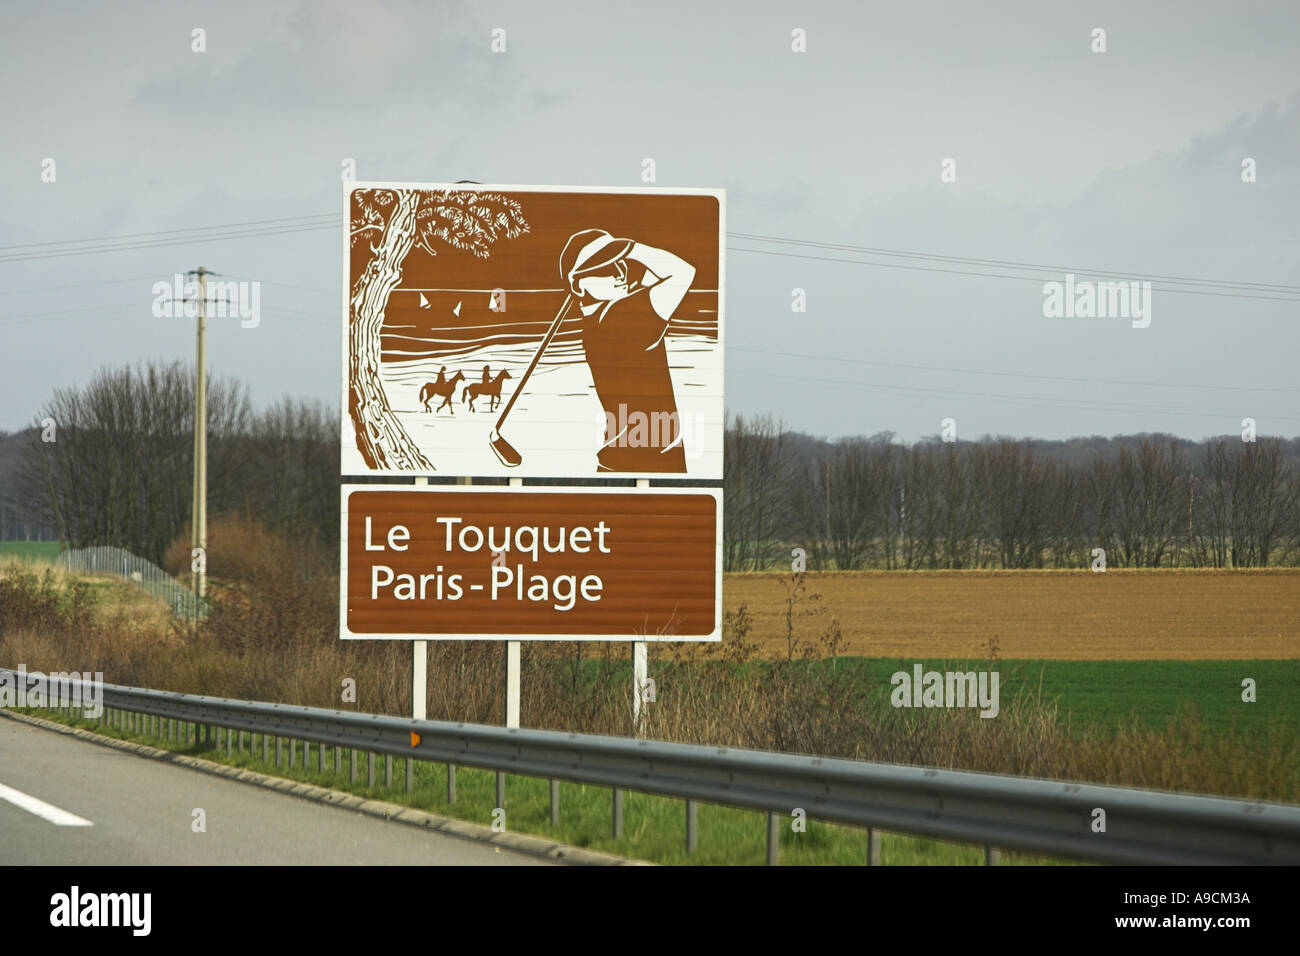 French painted autoroute tourist information sign Le Touquet, Paris Plage Stock Photo